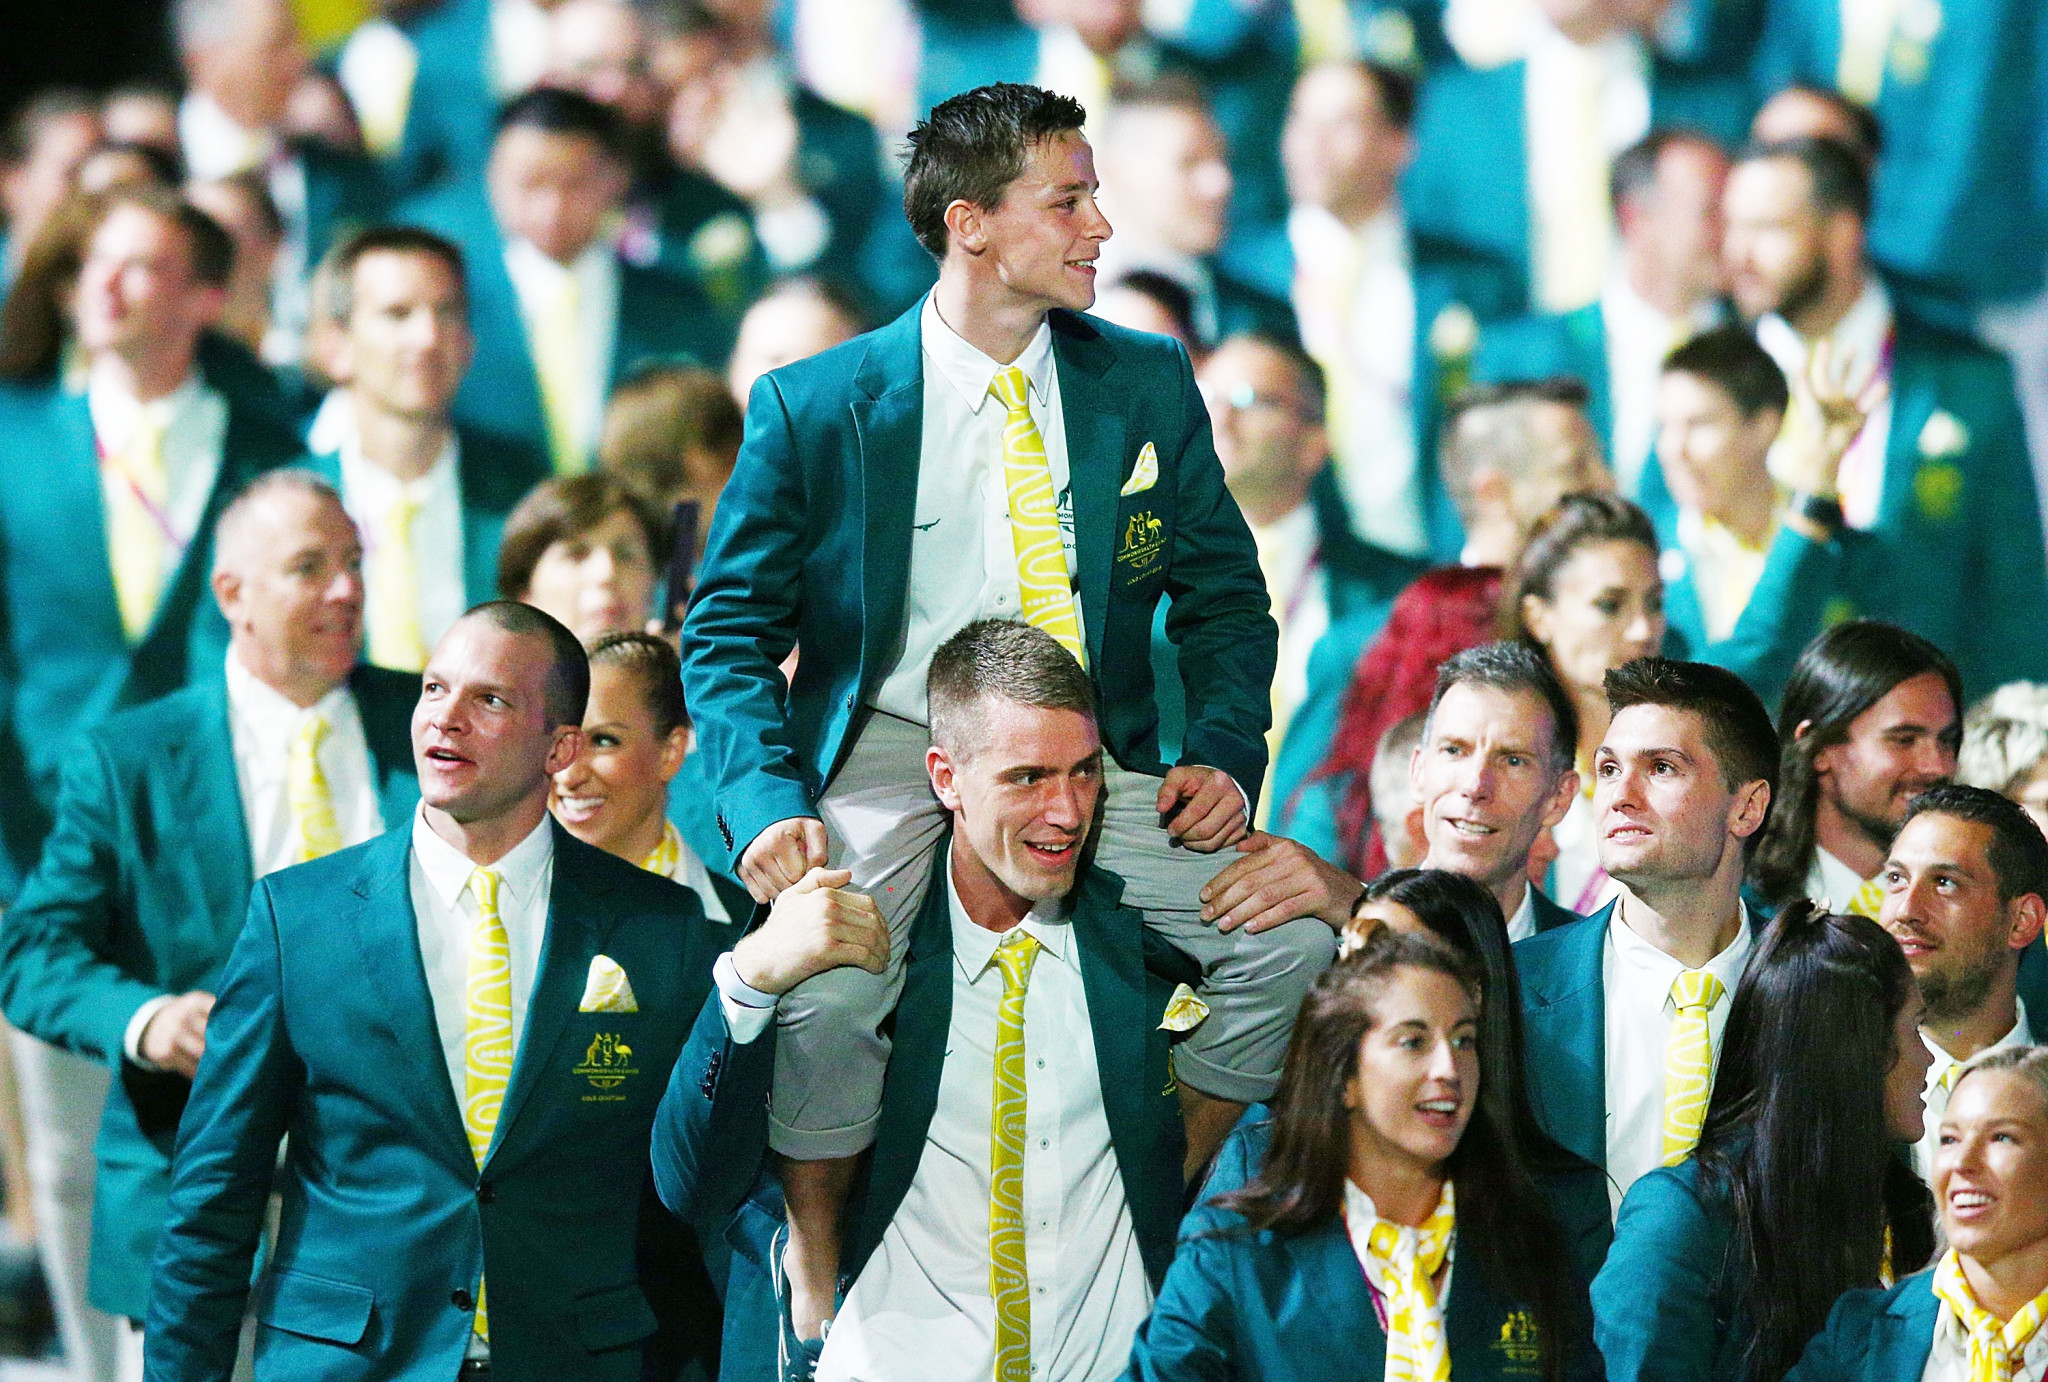 Australian athletes walk around during the Opening Ceremony for the Gold Coast 2018 Commonwealth Games at Carrara Stadium ©Getty Images